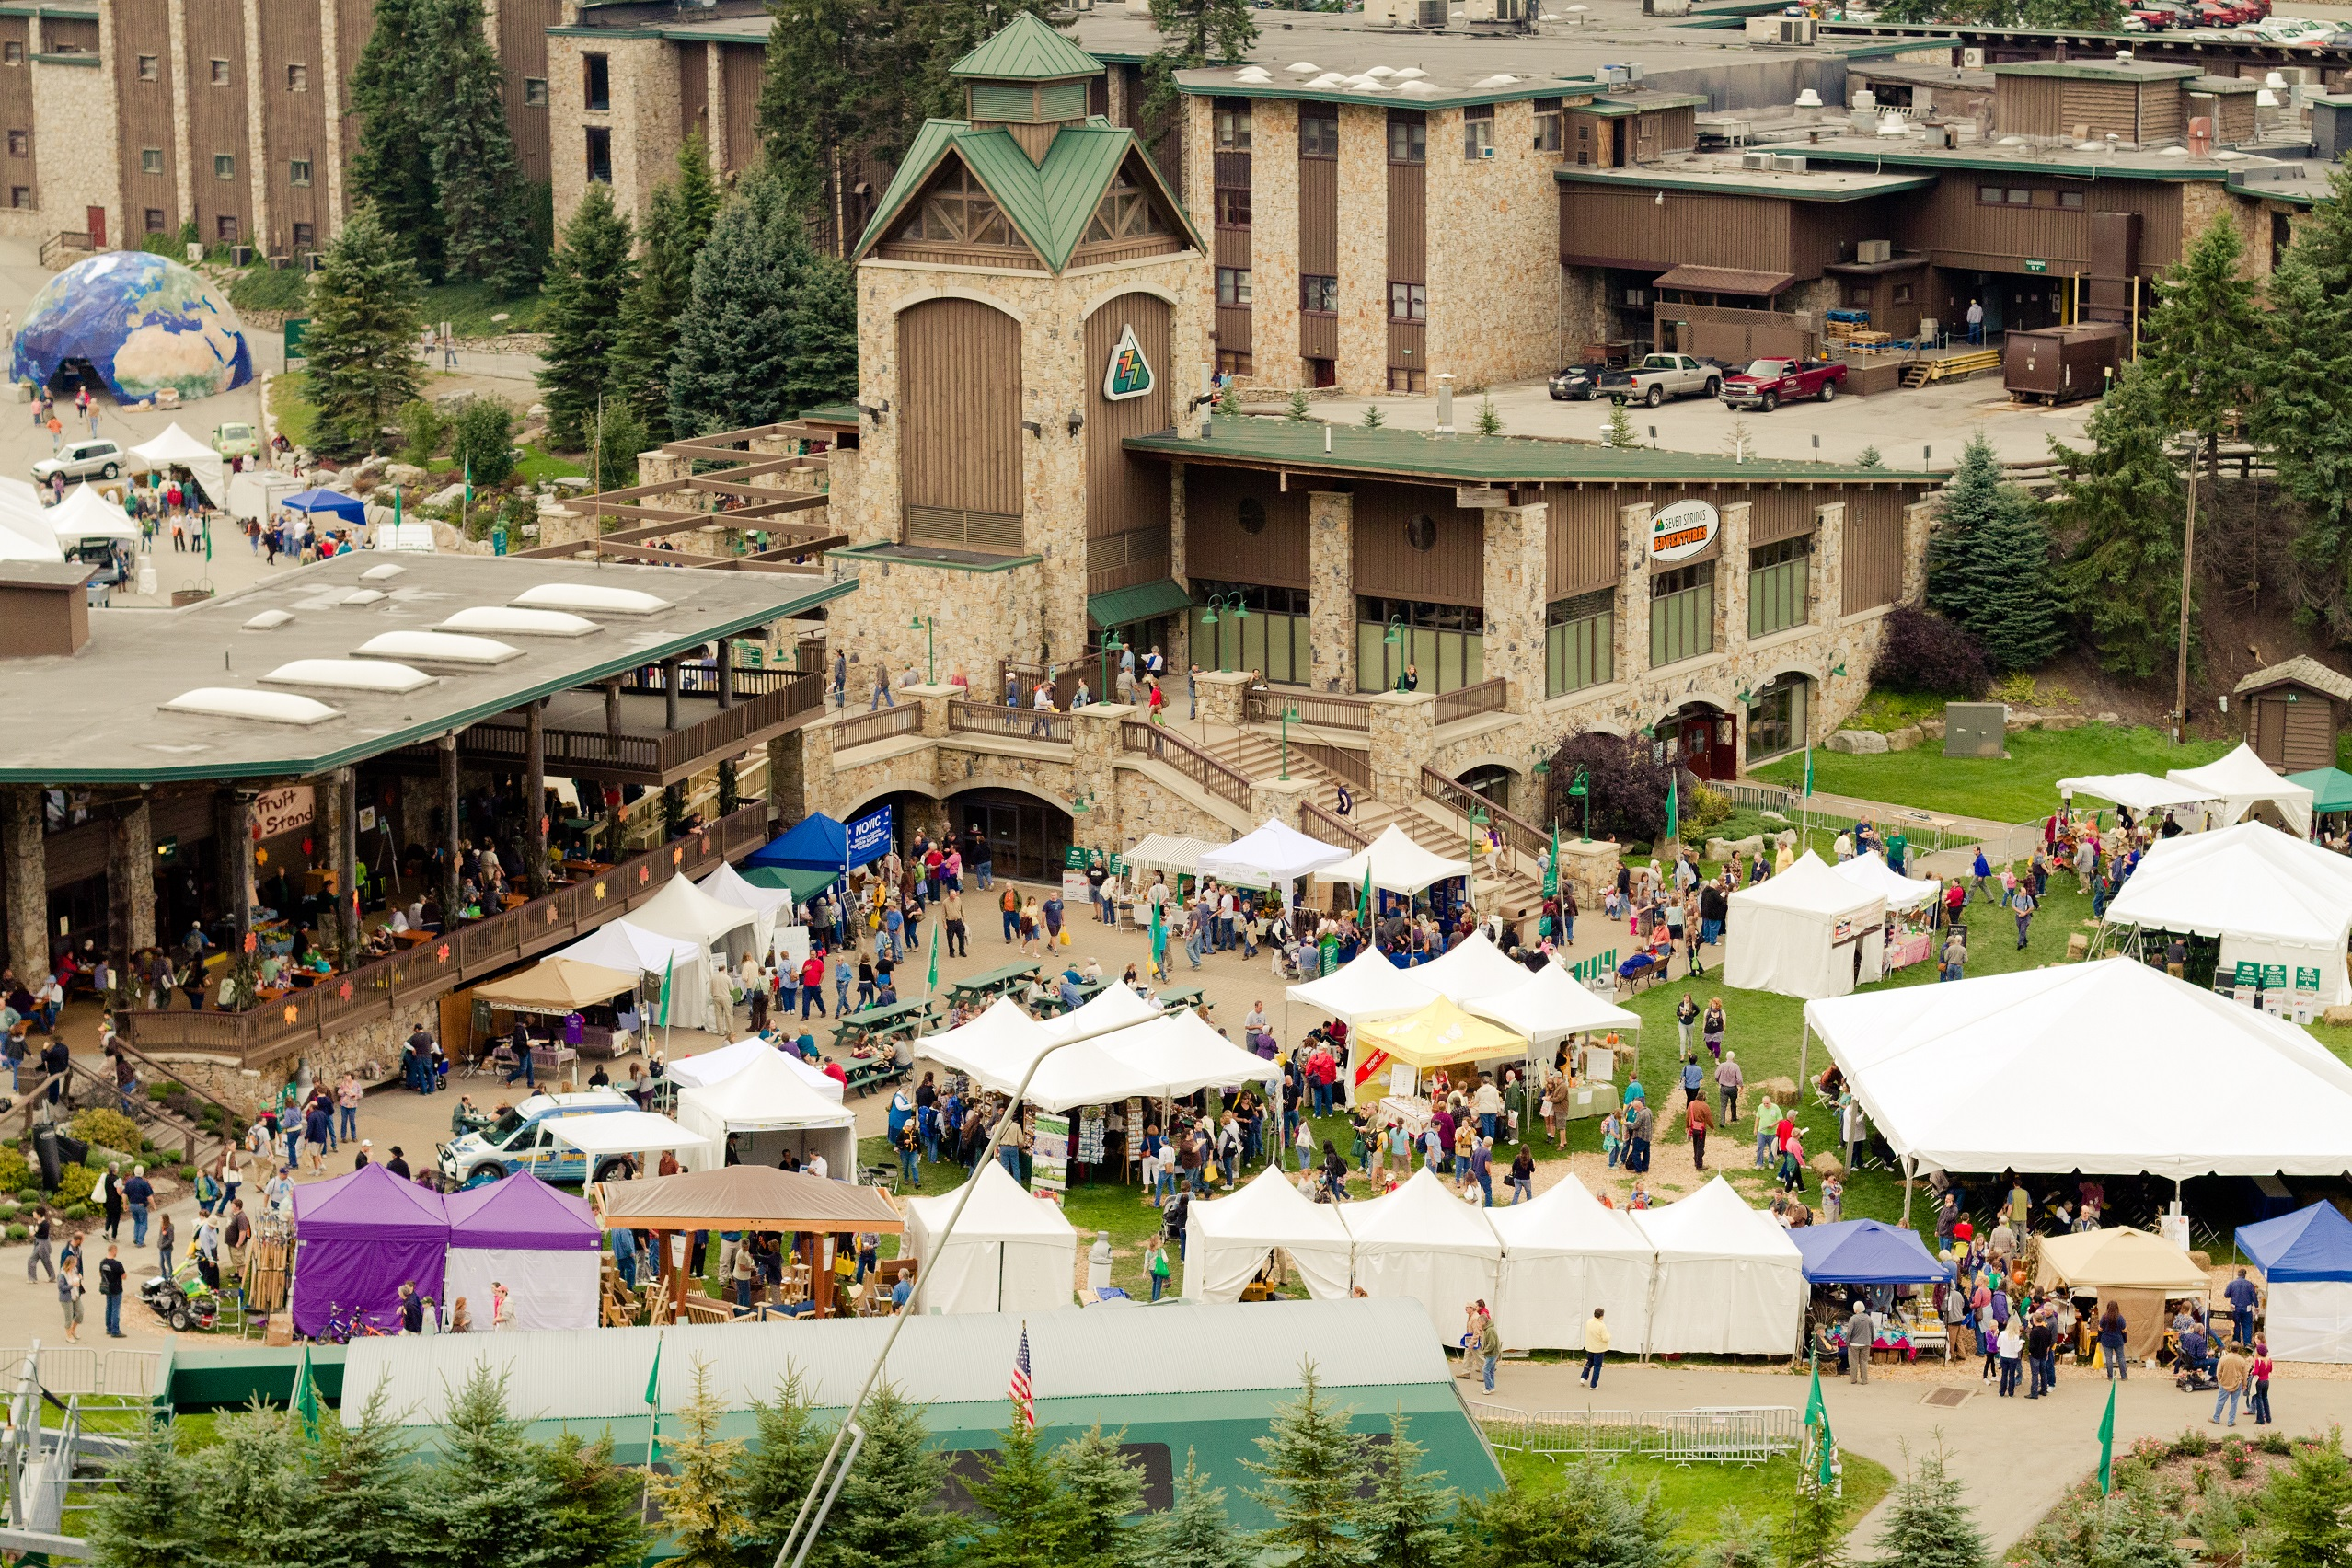 Seventh Annual Mother Earth New Fair returns to Pennsylvania